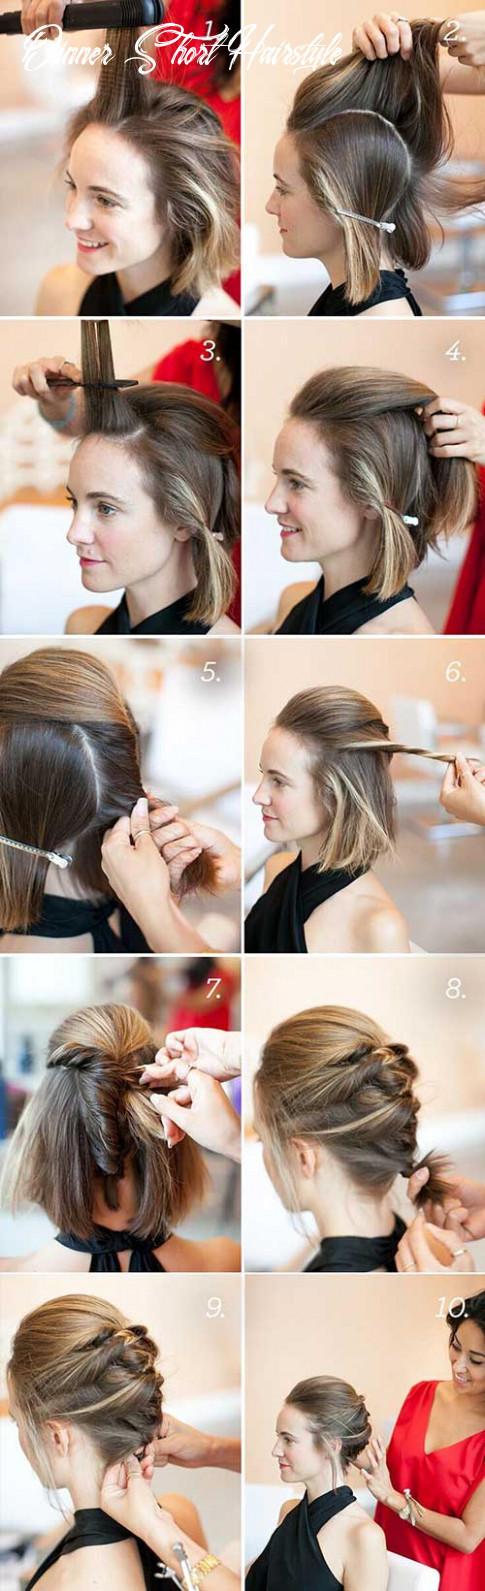 12 incredible diy short hairstyles a step by step guide dinner short hairstyle